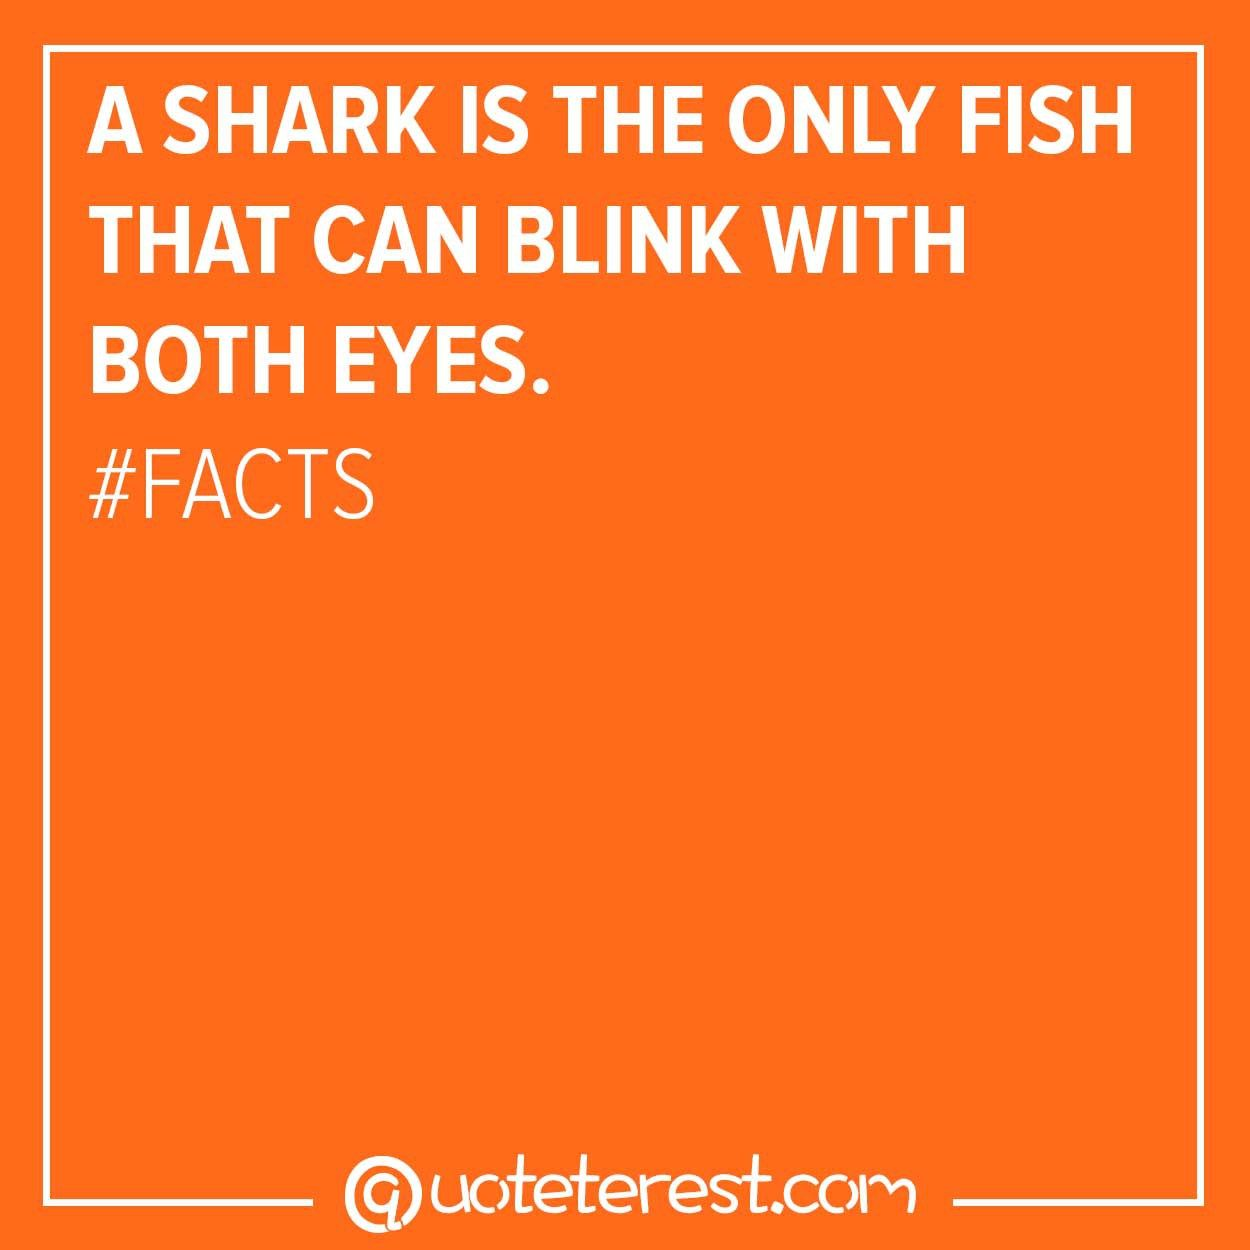 A Shark Is The Only Fish That Can Blink With Both Eyes